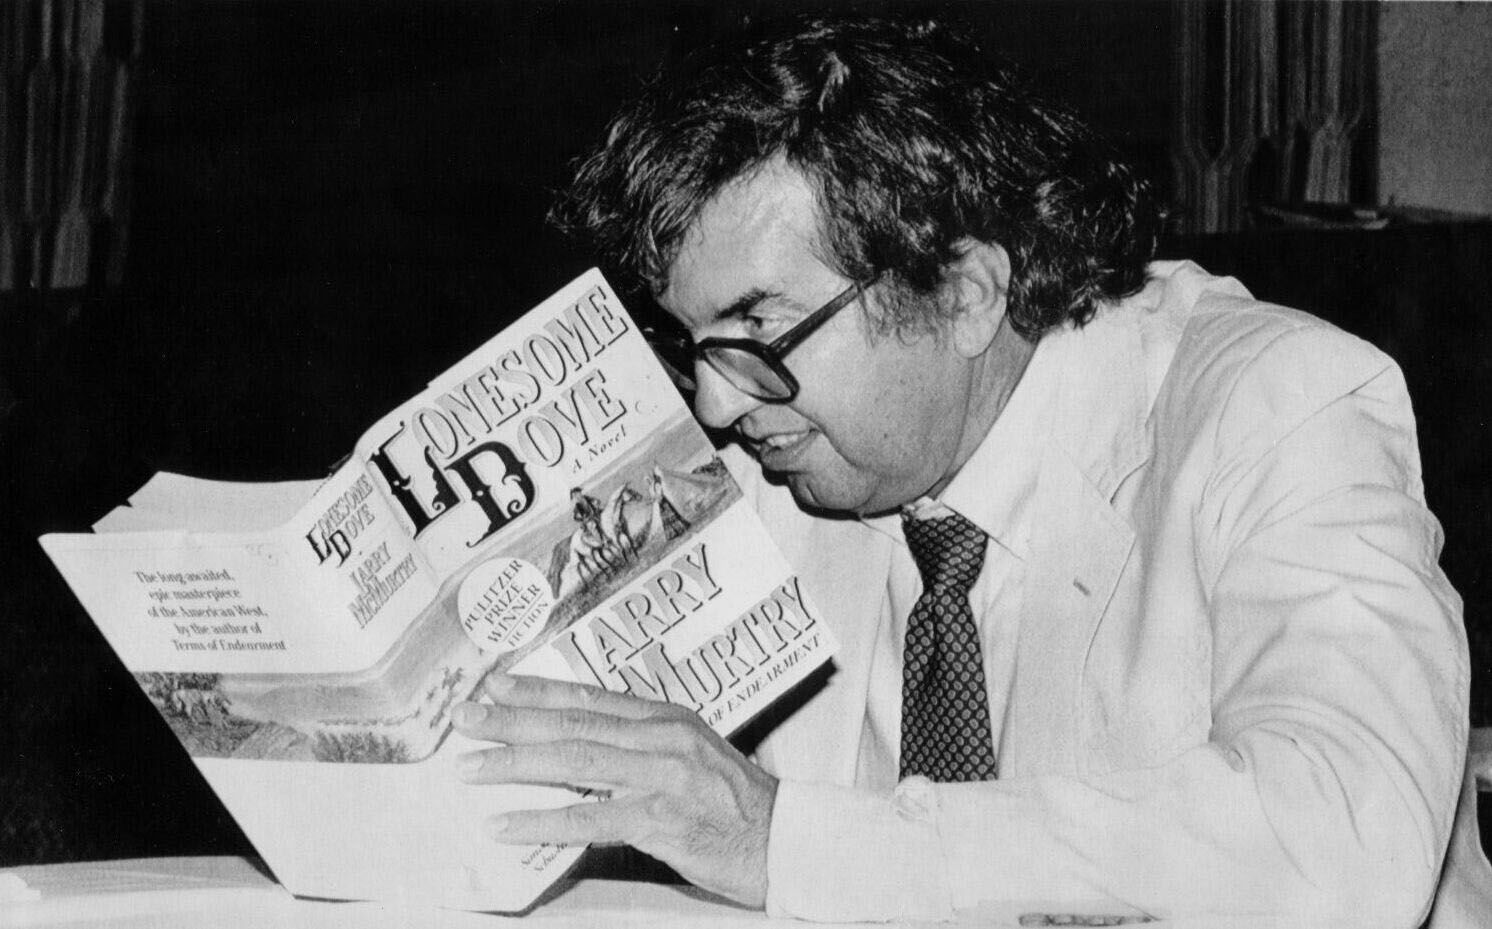 Pulitzer prize winning author Larry McMurtry autographs a copy of one of his books, Lonesome Dove, during a 1986 visit to North Texas State University (now UNT) in Denton, before speaking about Texas novels.